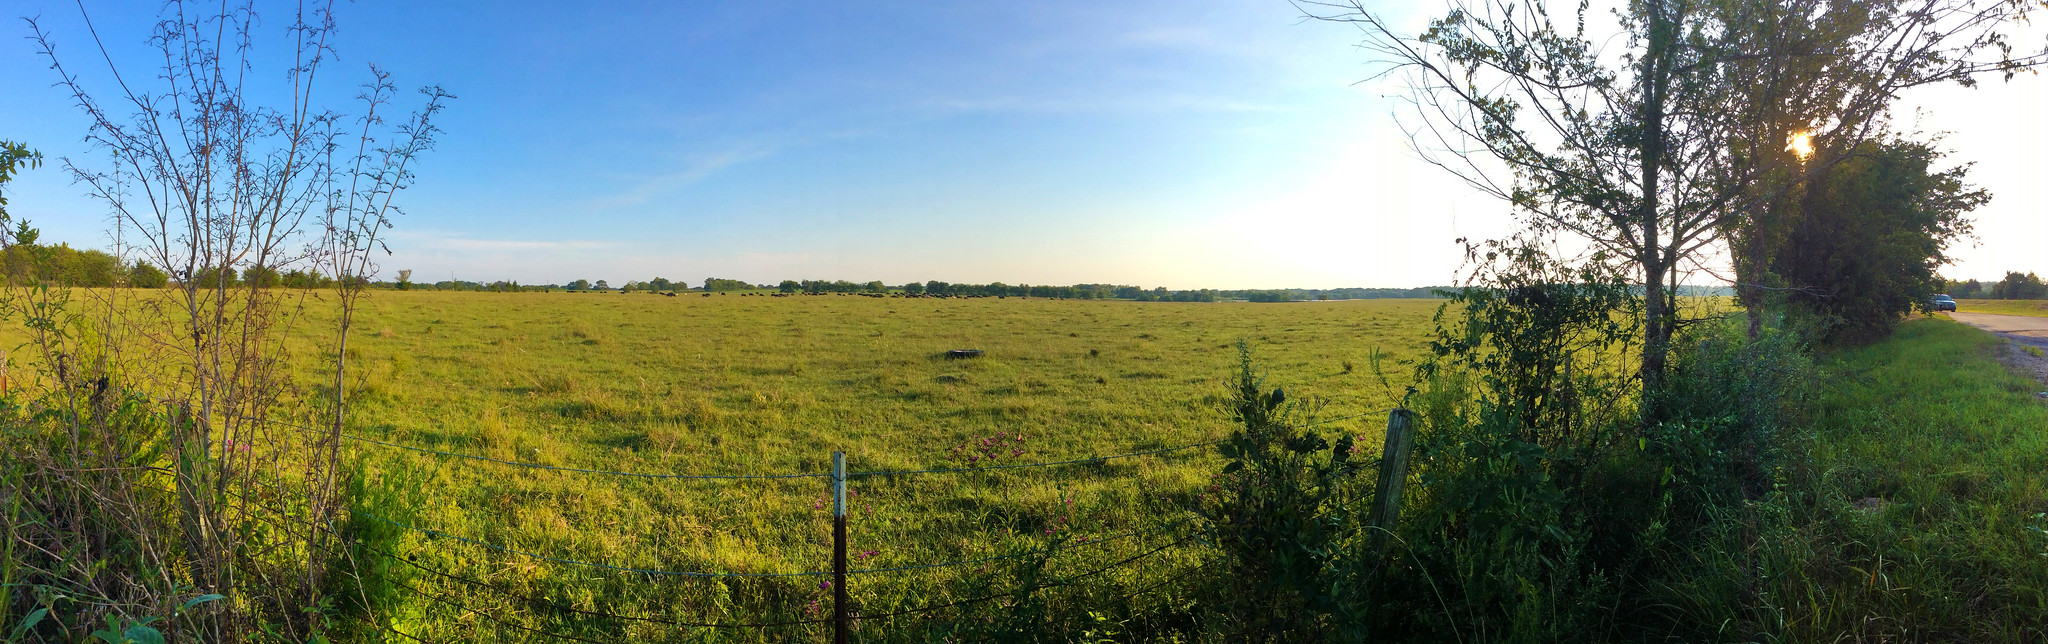 Wide shot of a cattle pasture